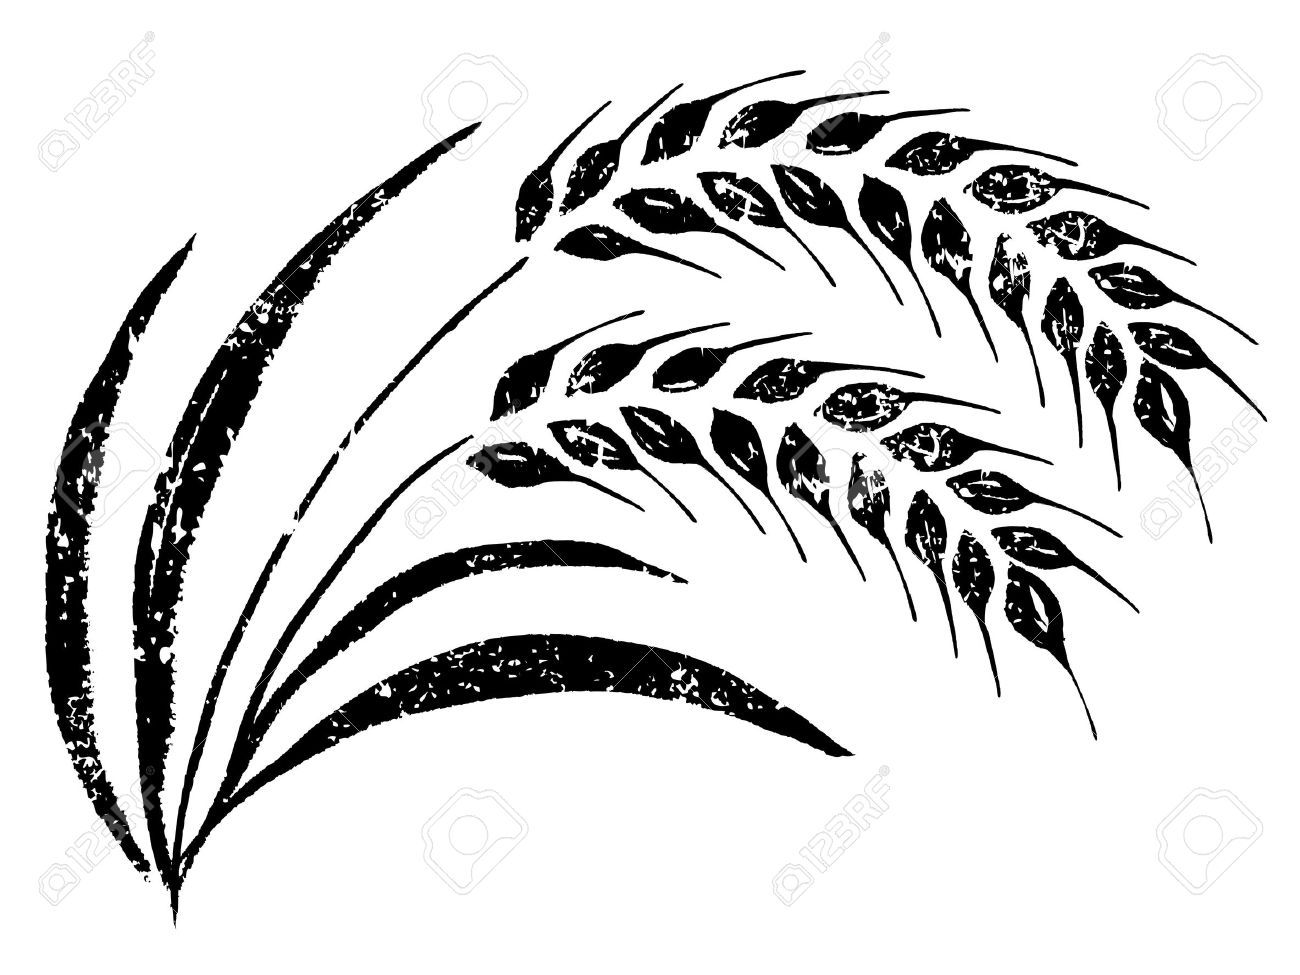 Hand Drawn Rice How To Draw Hands Plant Vector Grass Vector